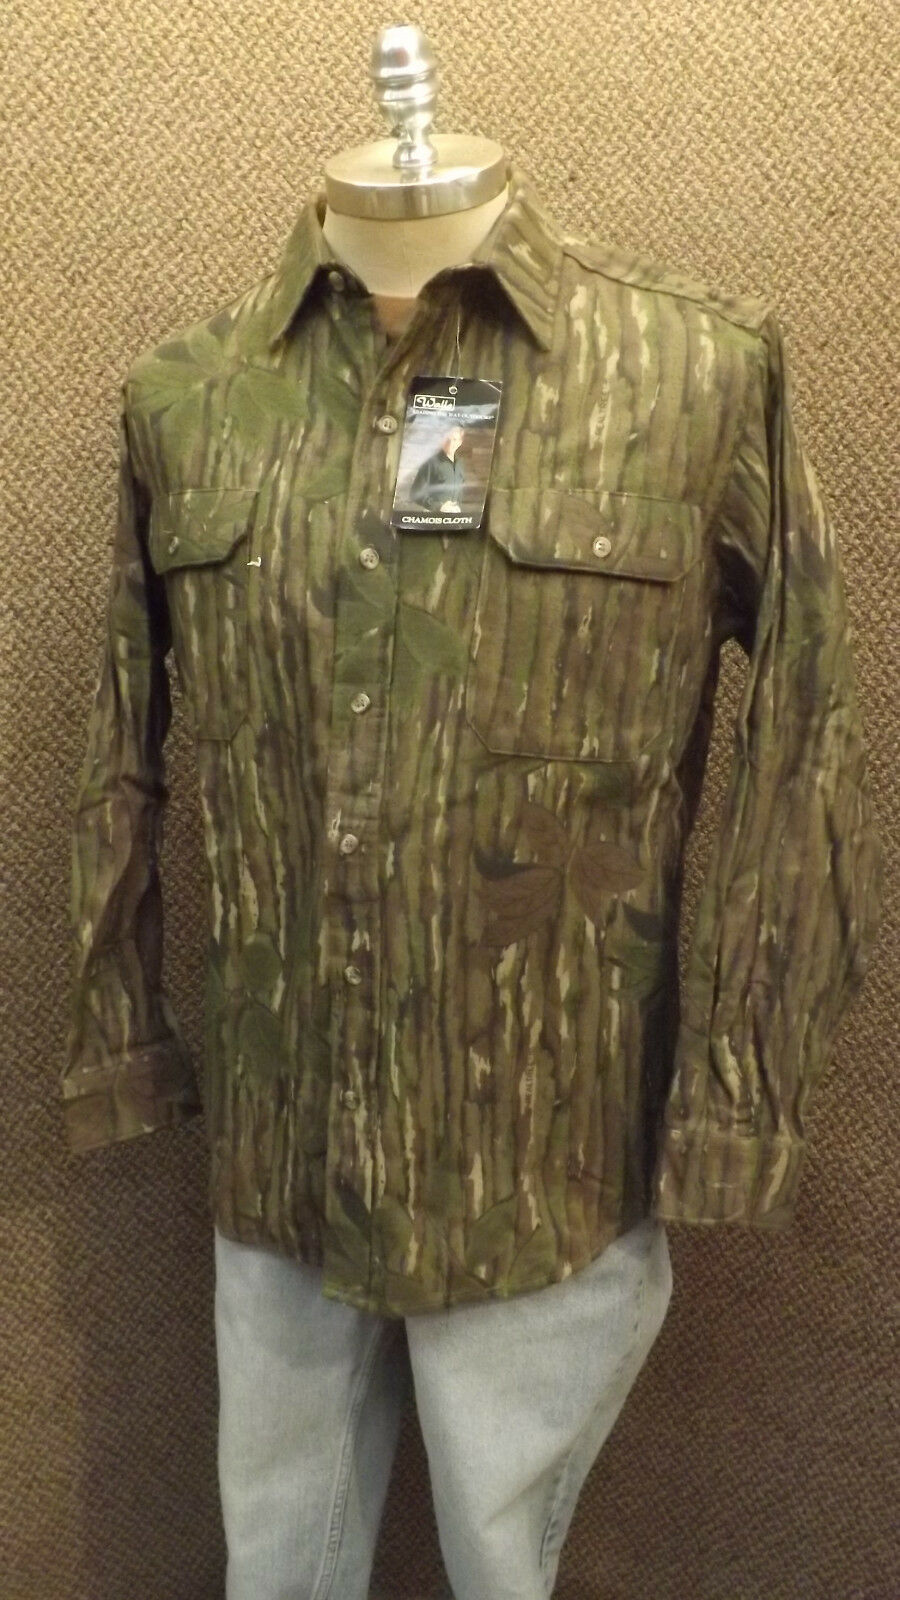 Vtg NEW Walls Realtree Camo Hunting Shirt   Cotton Chamois NOS sz XL USA Made BR  most preferential